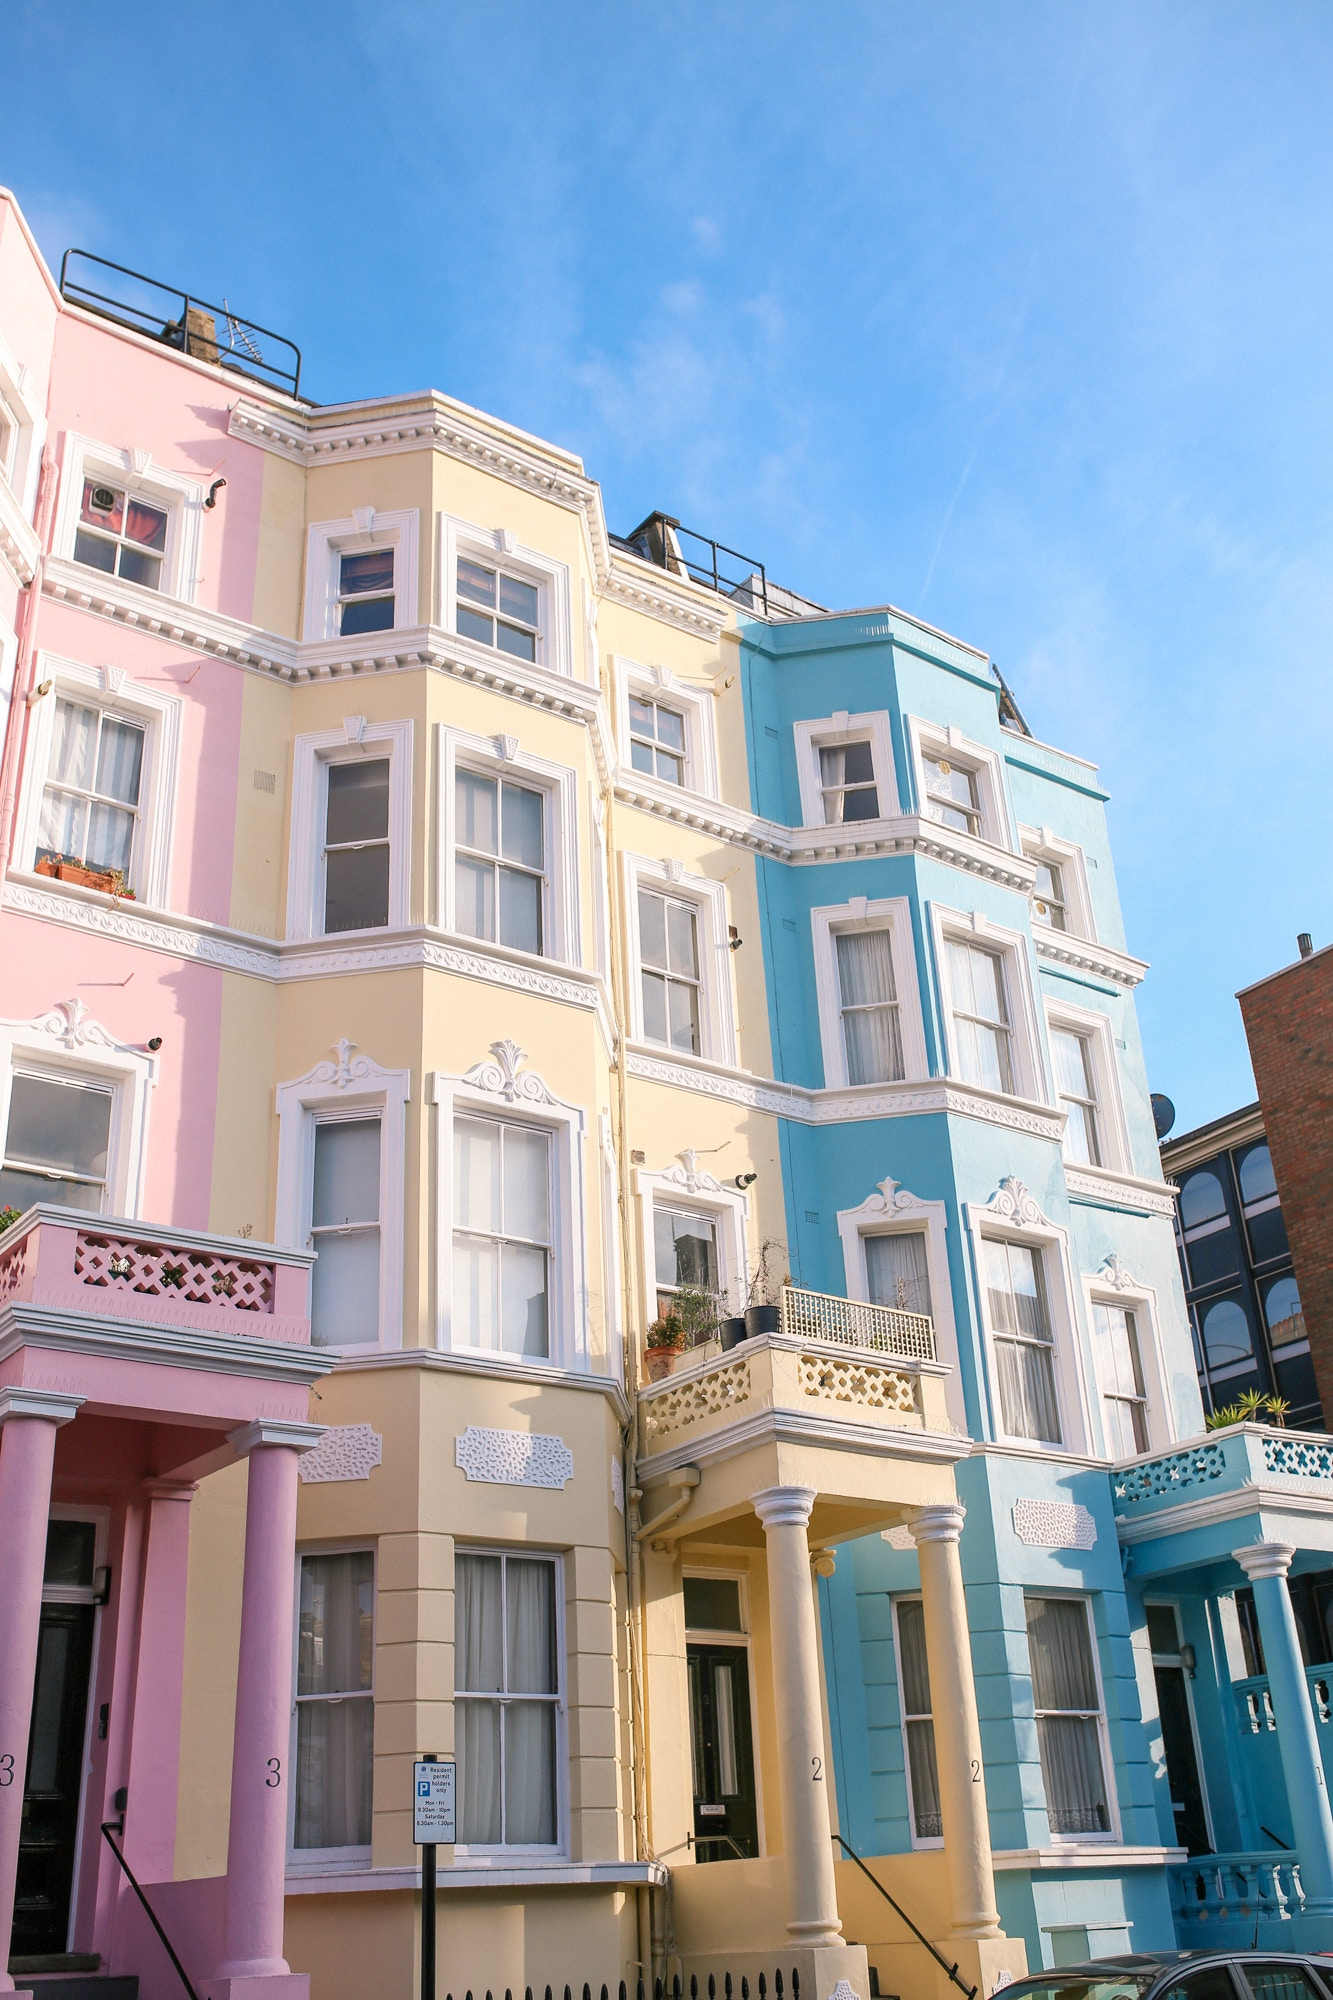 Colville Houses in Notting Hill London - the cutest colourful houses in the city!